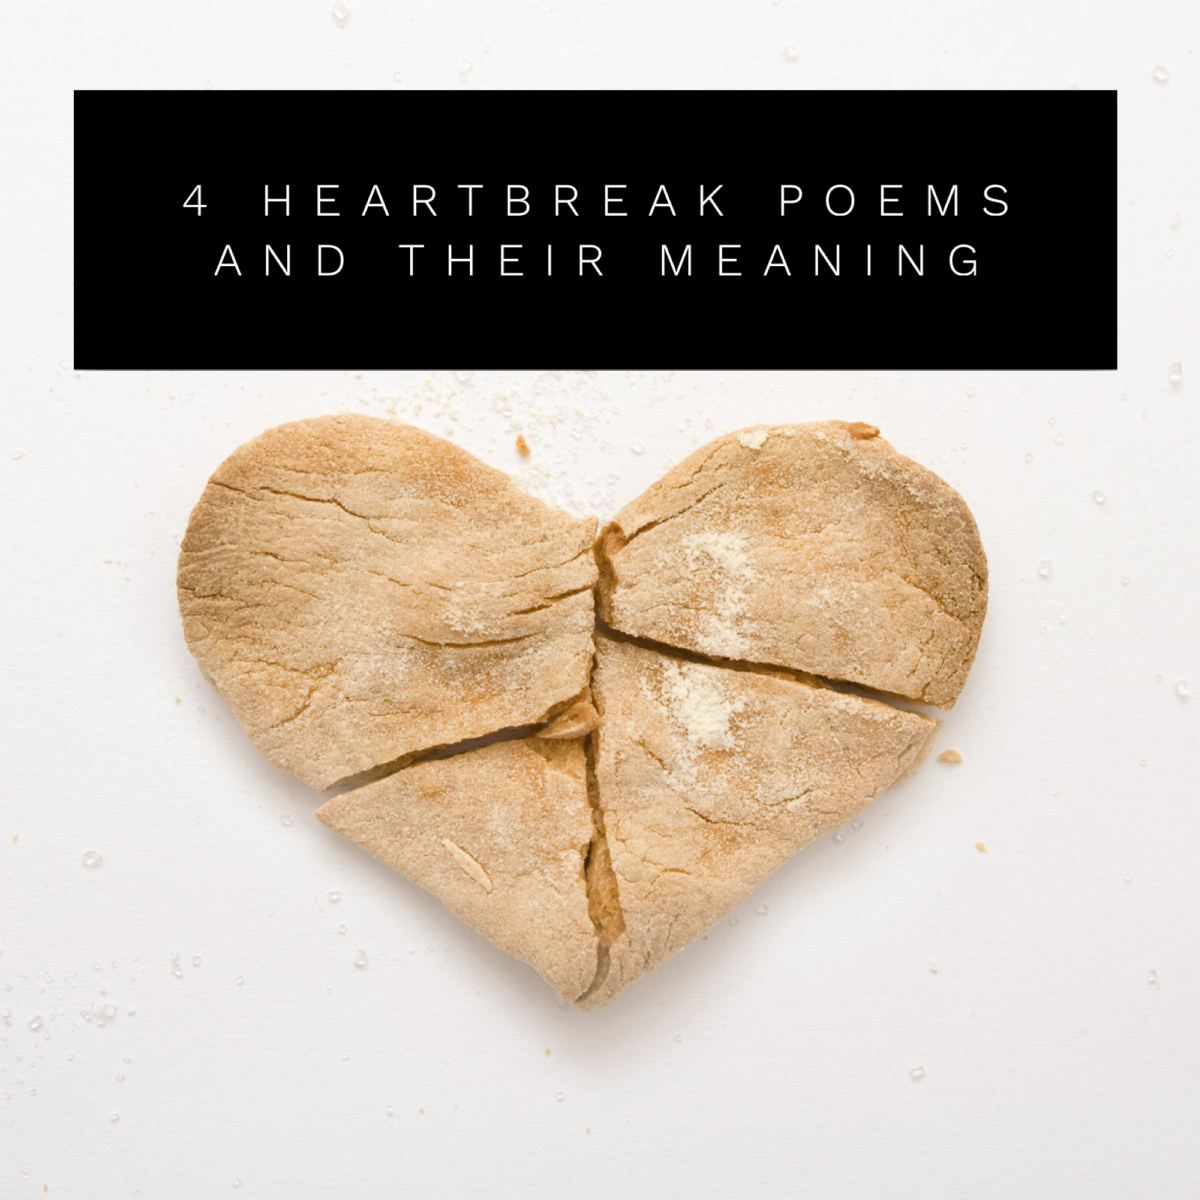 4 Heartbreak Poems and Their Meaning | LetterPile